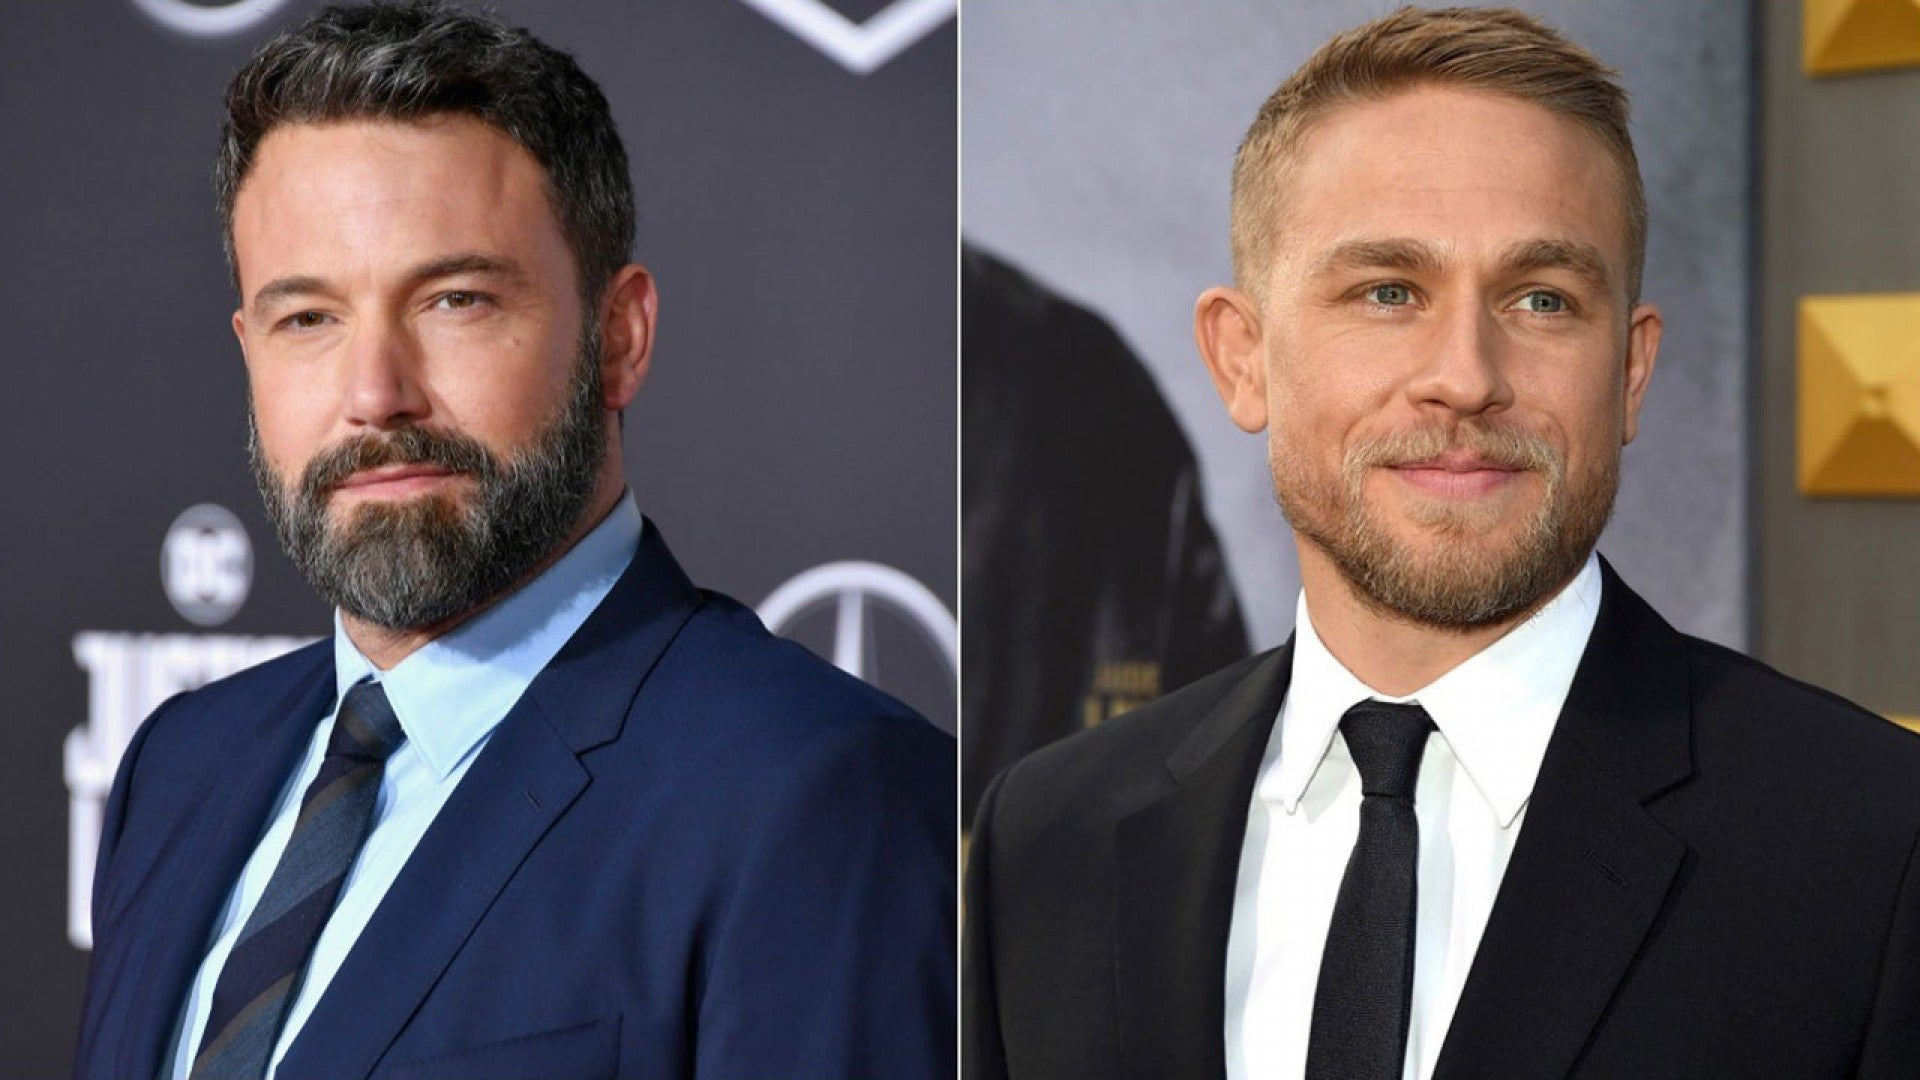 Ben Affleck And Charlie Hunnam Go Shirtless While Training For New